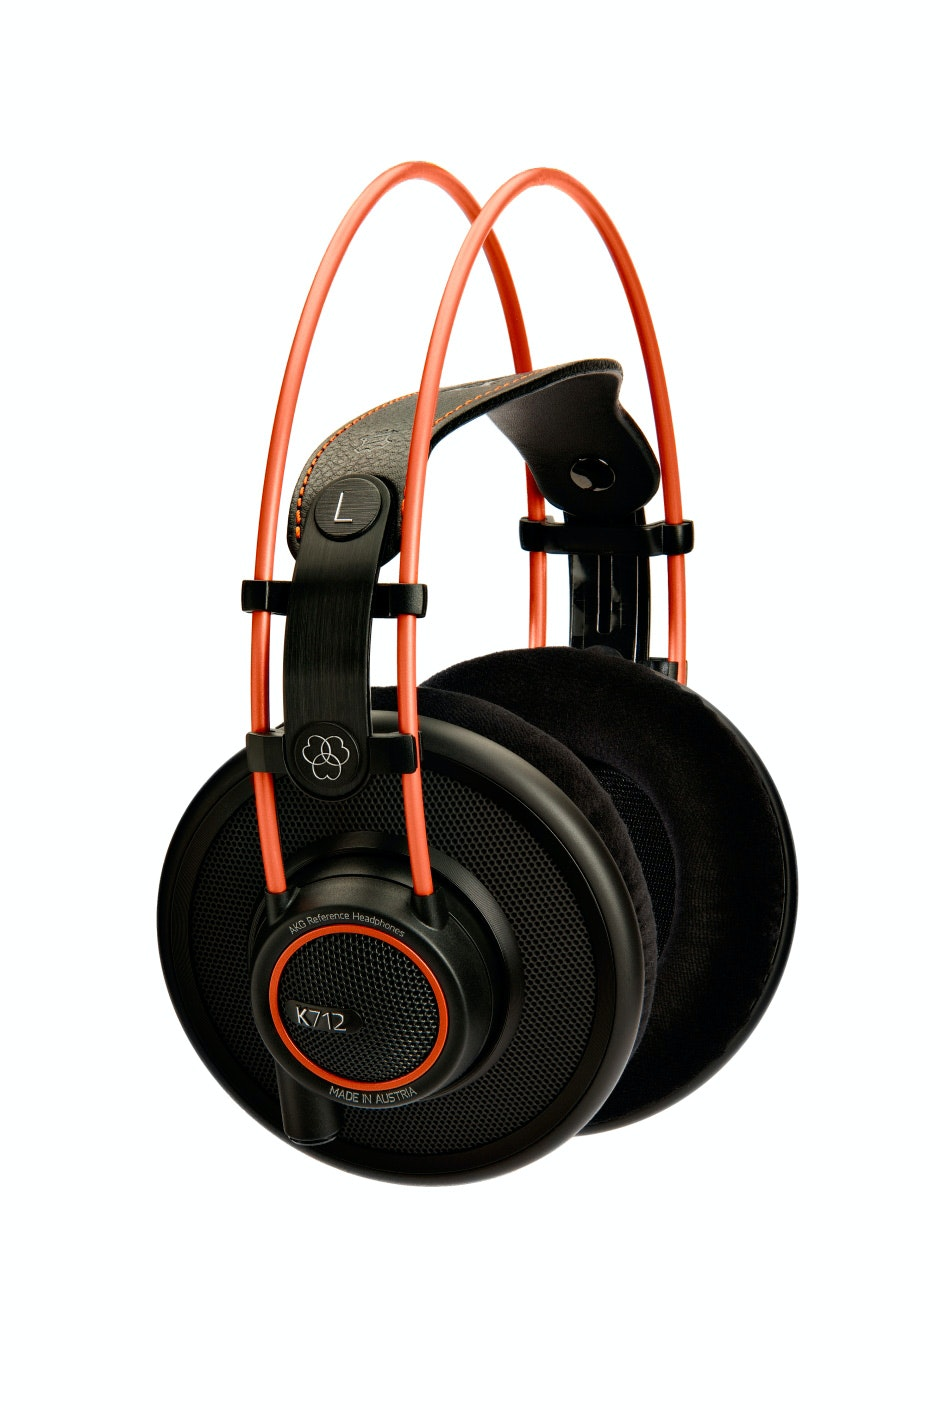 Semi-Open Over Ear Headphones Beyerdynamic DT 880